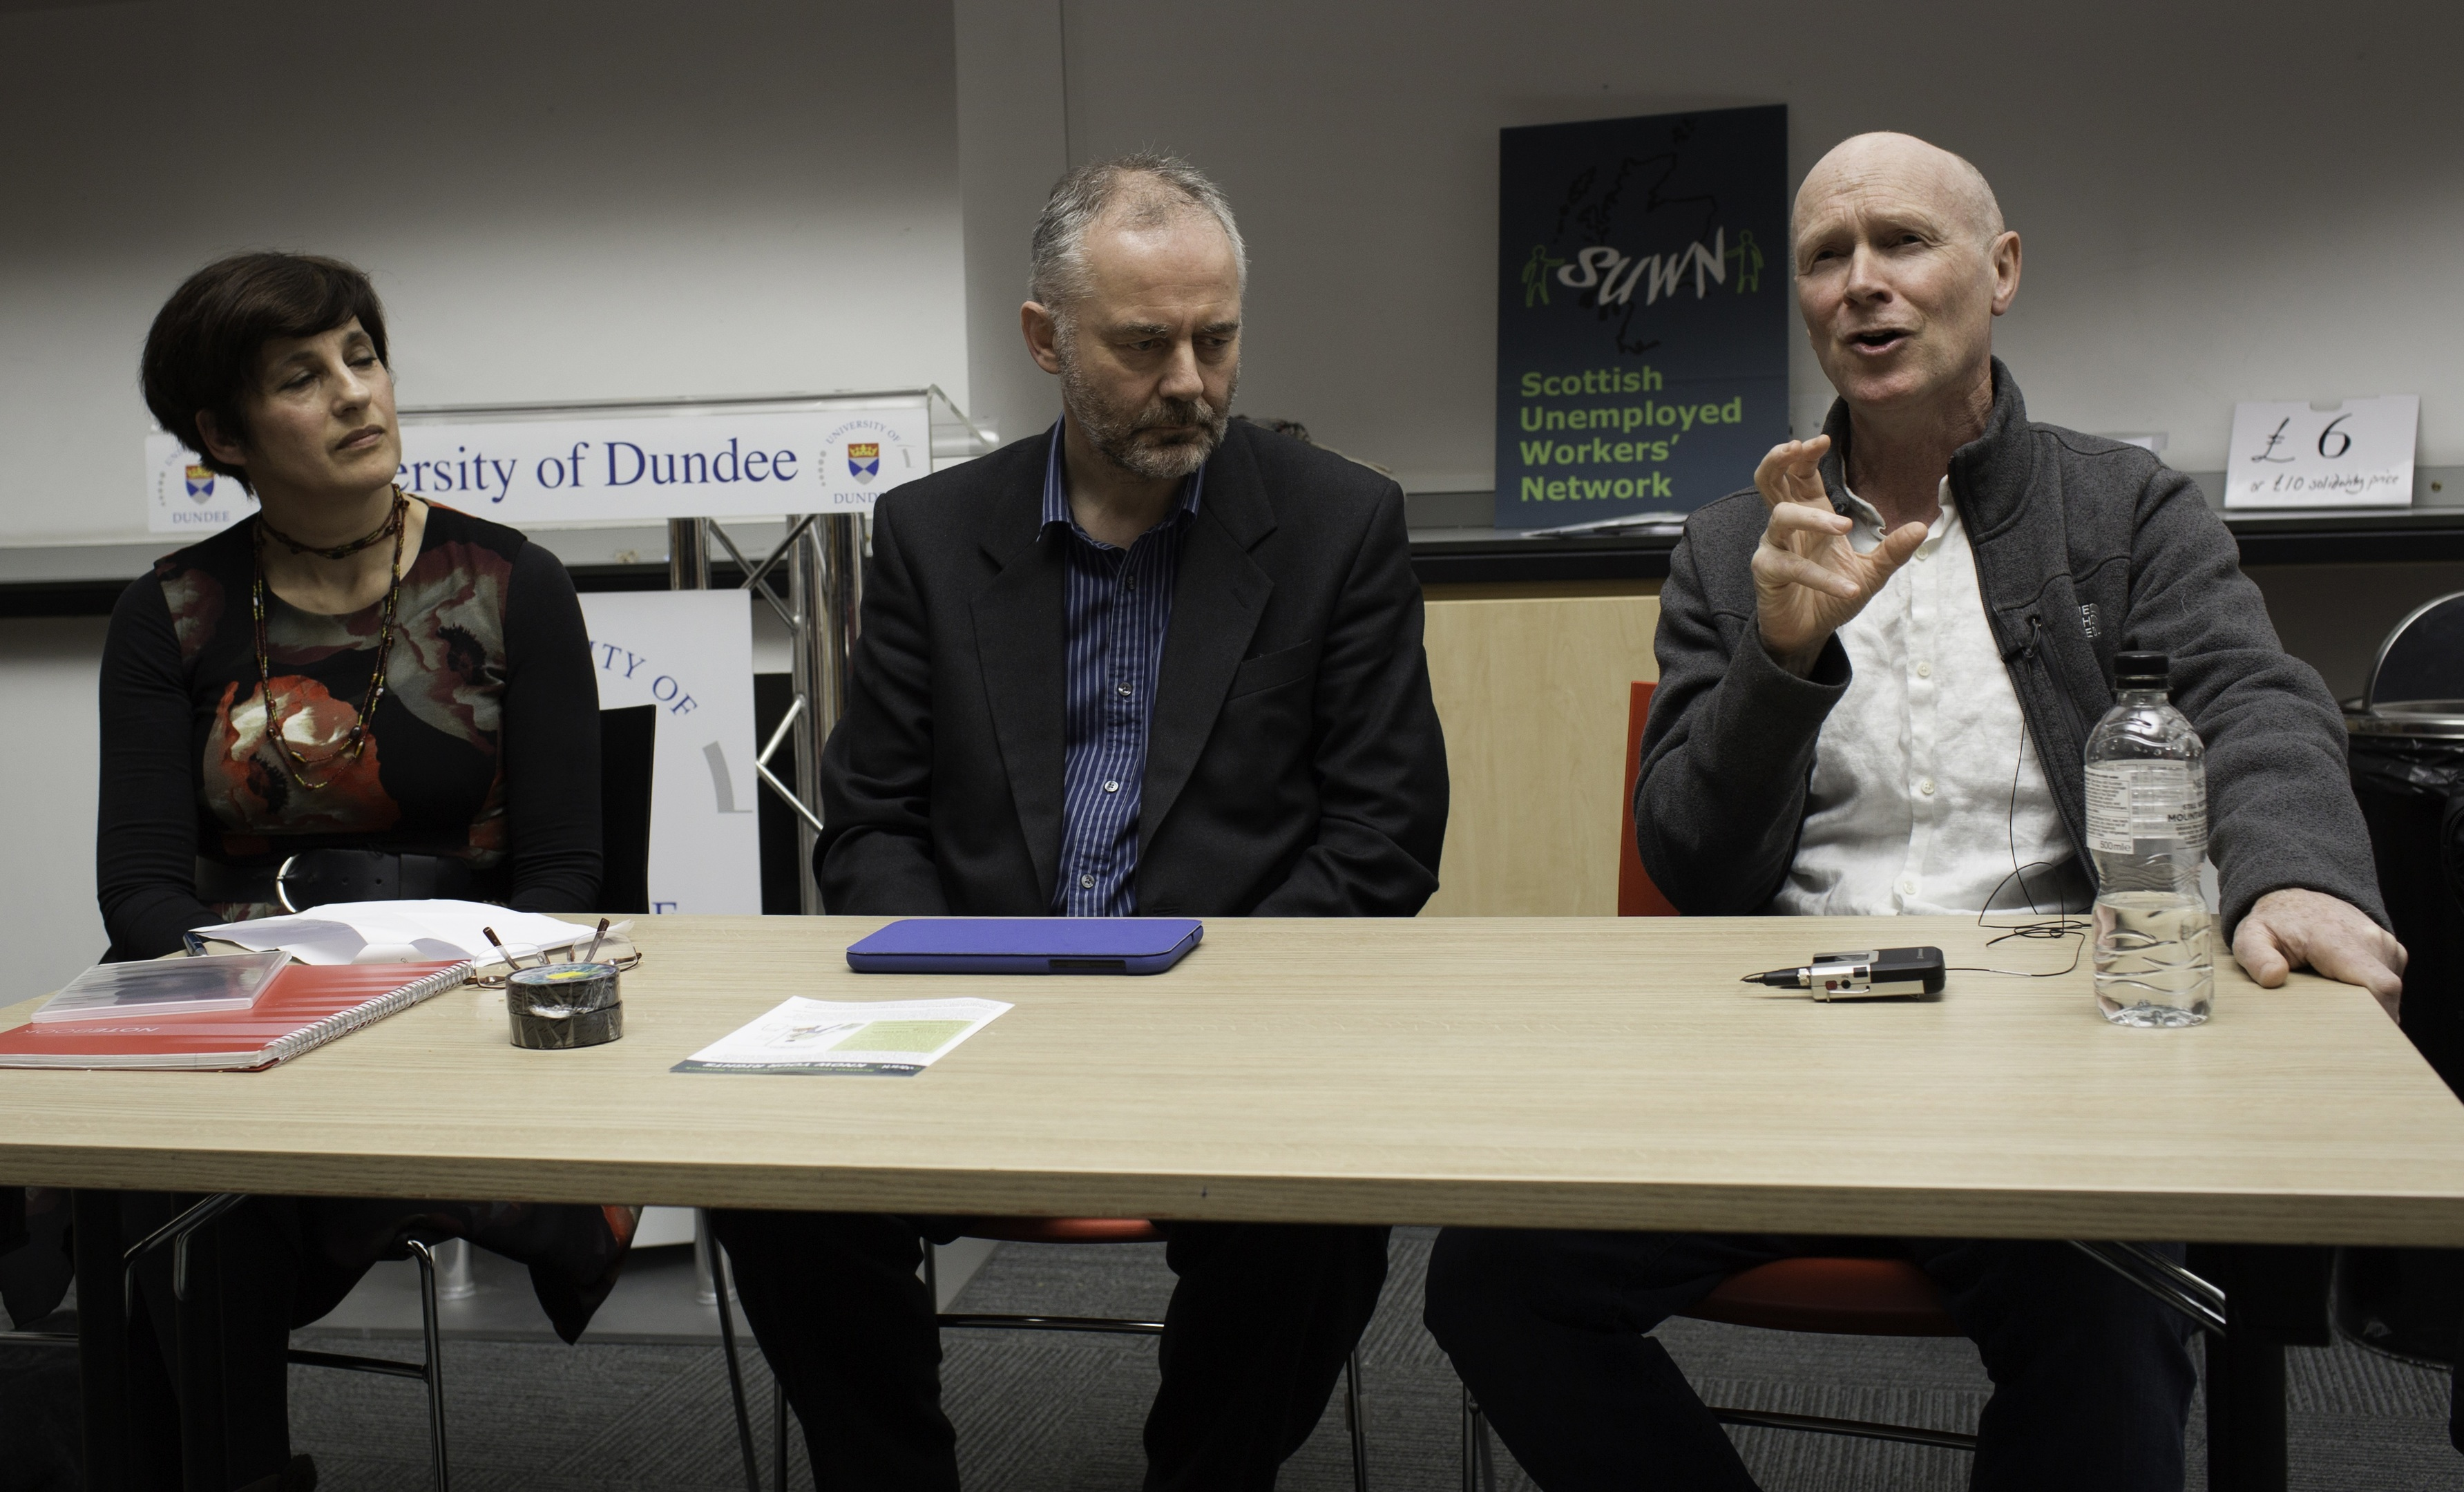 From left to right: Sarah Glynn with Jimmy Black and Paul Laverty at the film screening and discussion.